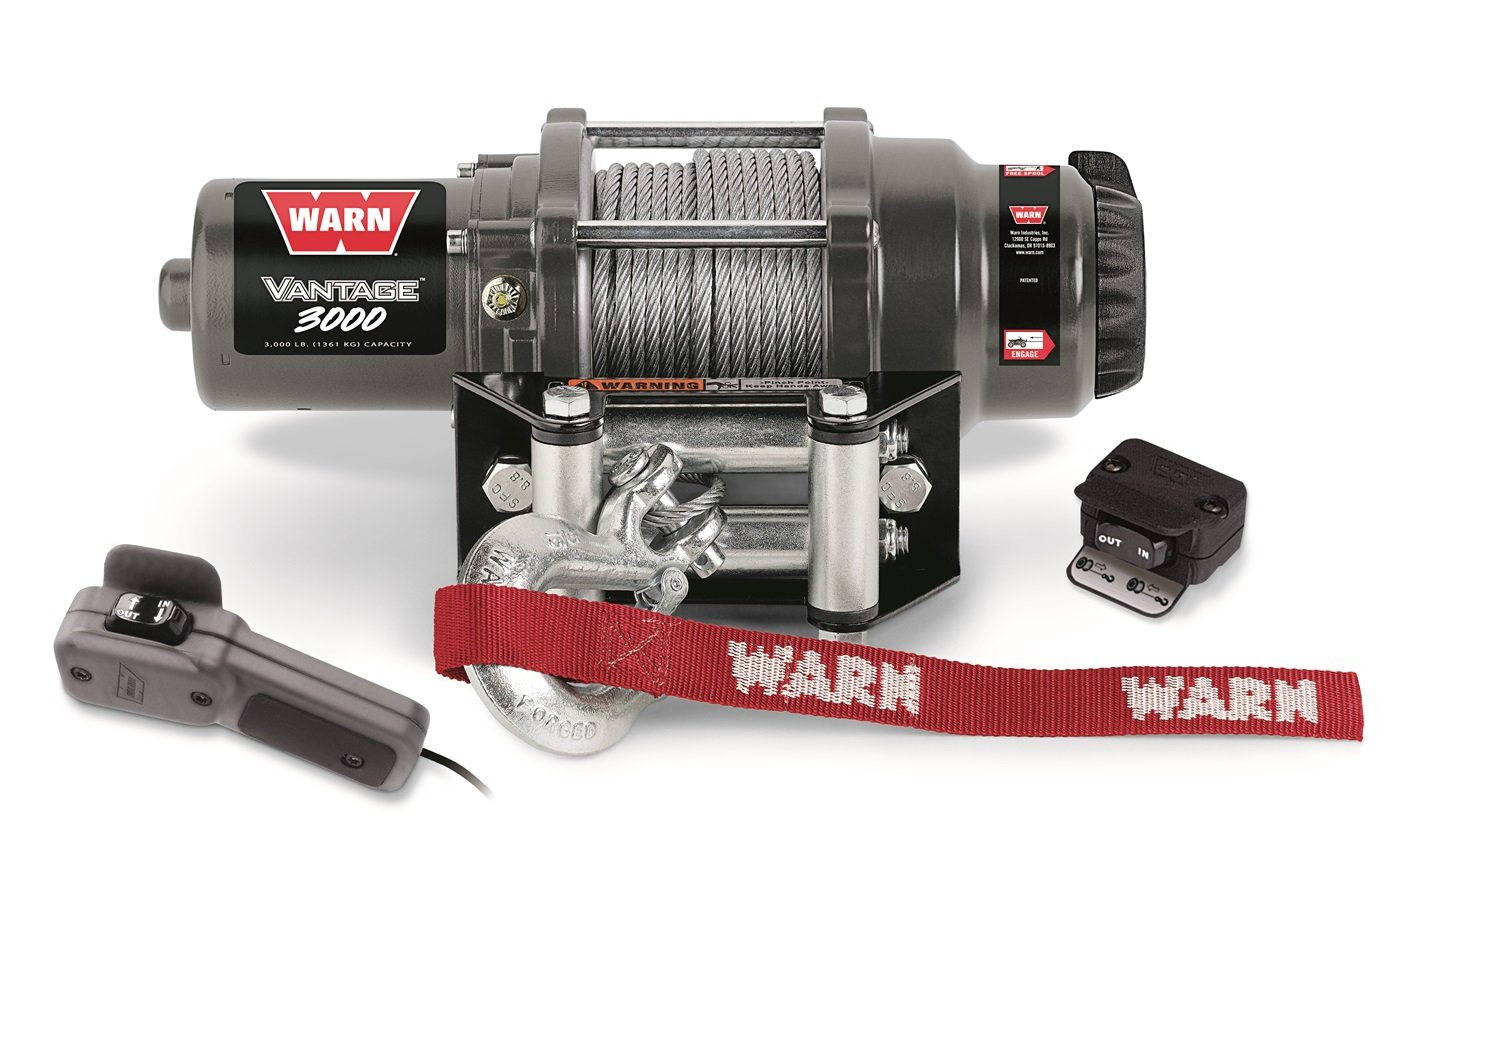 71jbS1GH2gL._SL1500_ amazon com warn 89030 vantage 3000 winch 3000 lb capacity warn vantage 3000 wiring diagram at bayanpartner.co